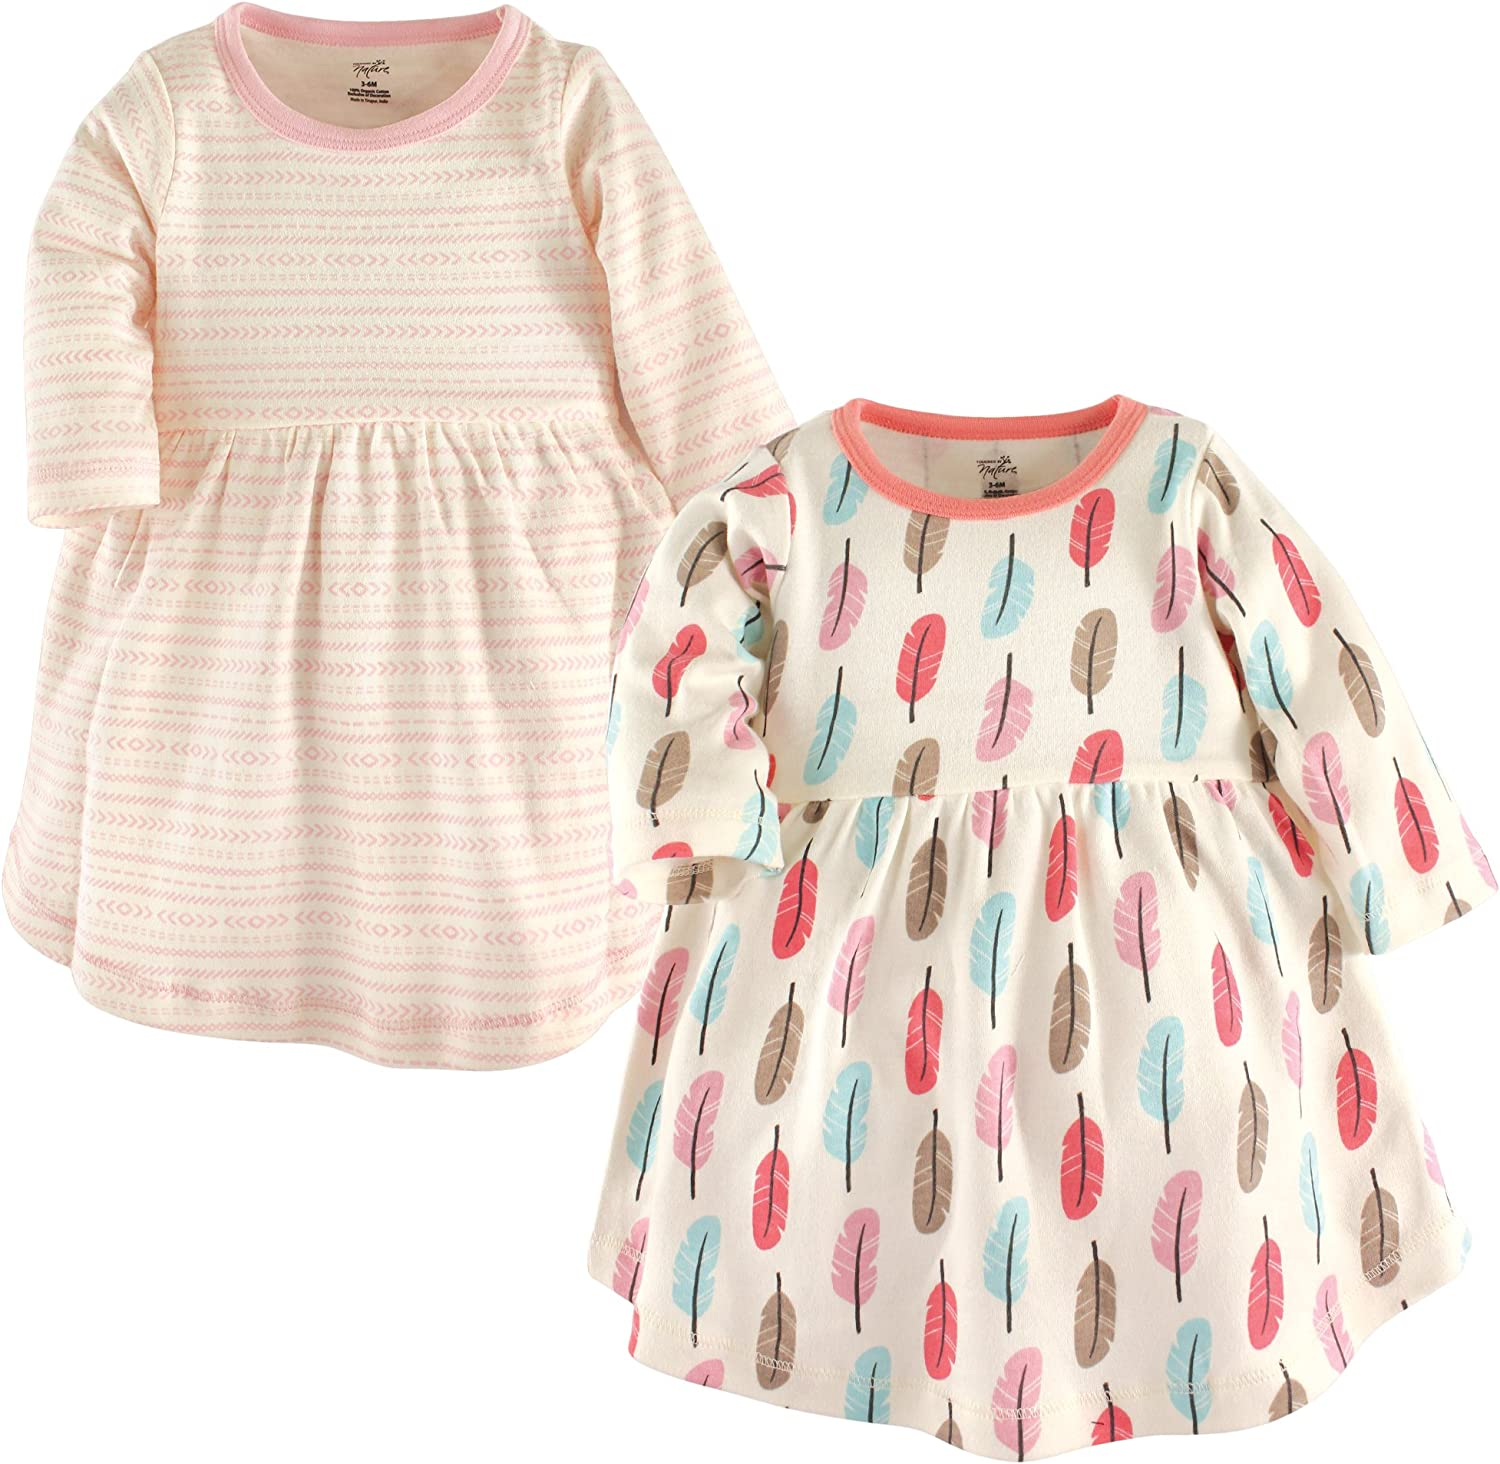 Touched by Nature Girls' Organic Cotton Long-Sleeve Dresses